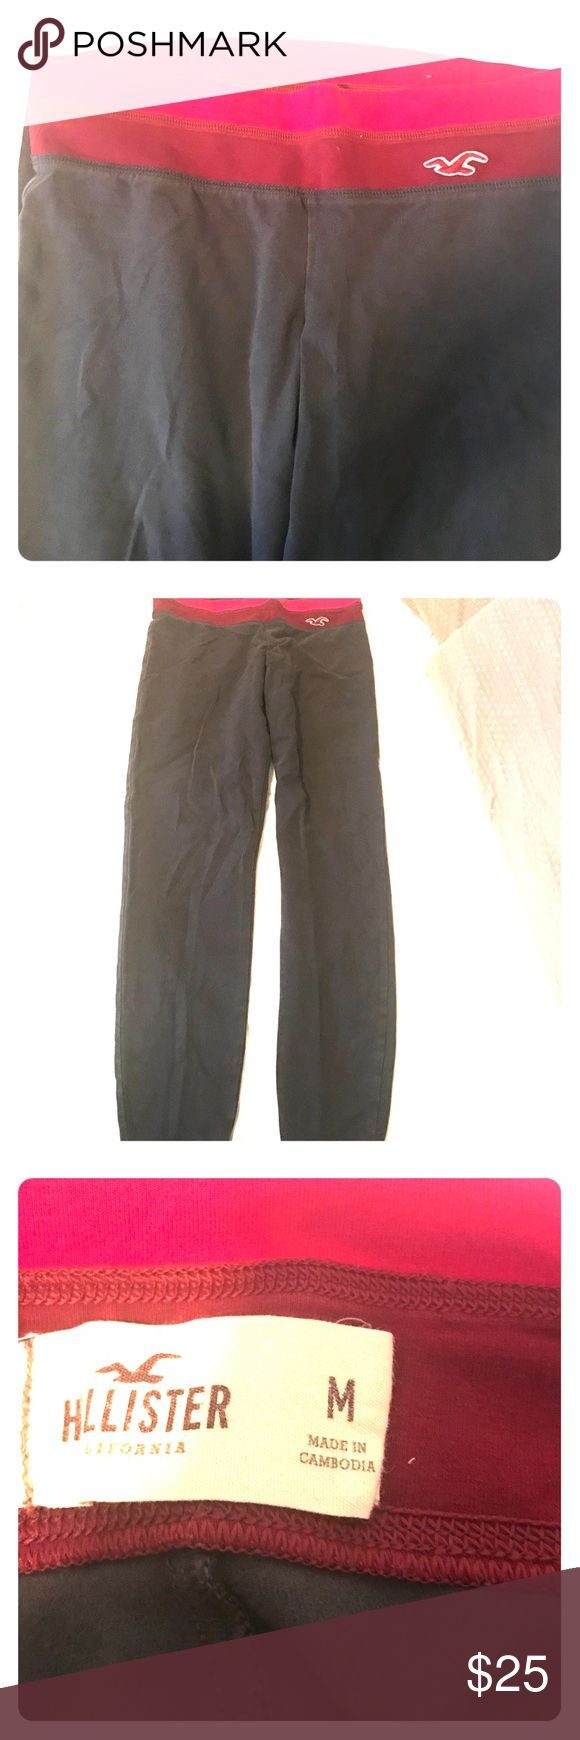 Women's Hollister Leggings, size M, in Gray Women's Hollister Leggings, size M, in Gray. Worn and washed but still in great condition. The pink band at the top is so cute, and the Hollister bird logo is featured near the waistband. Still have good stretch to them and look great! Please feel free to ask questions, thanks!! Hollister Pants Leggings